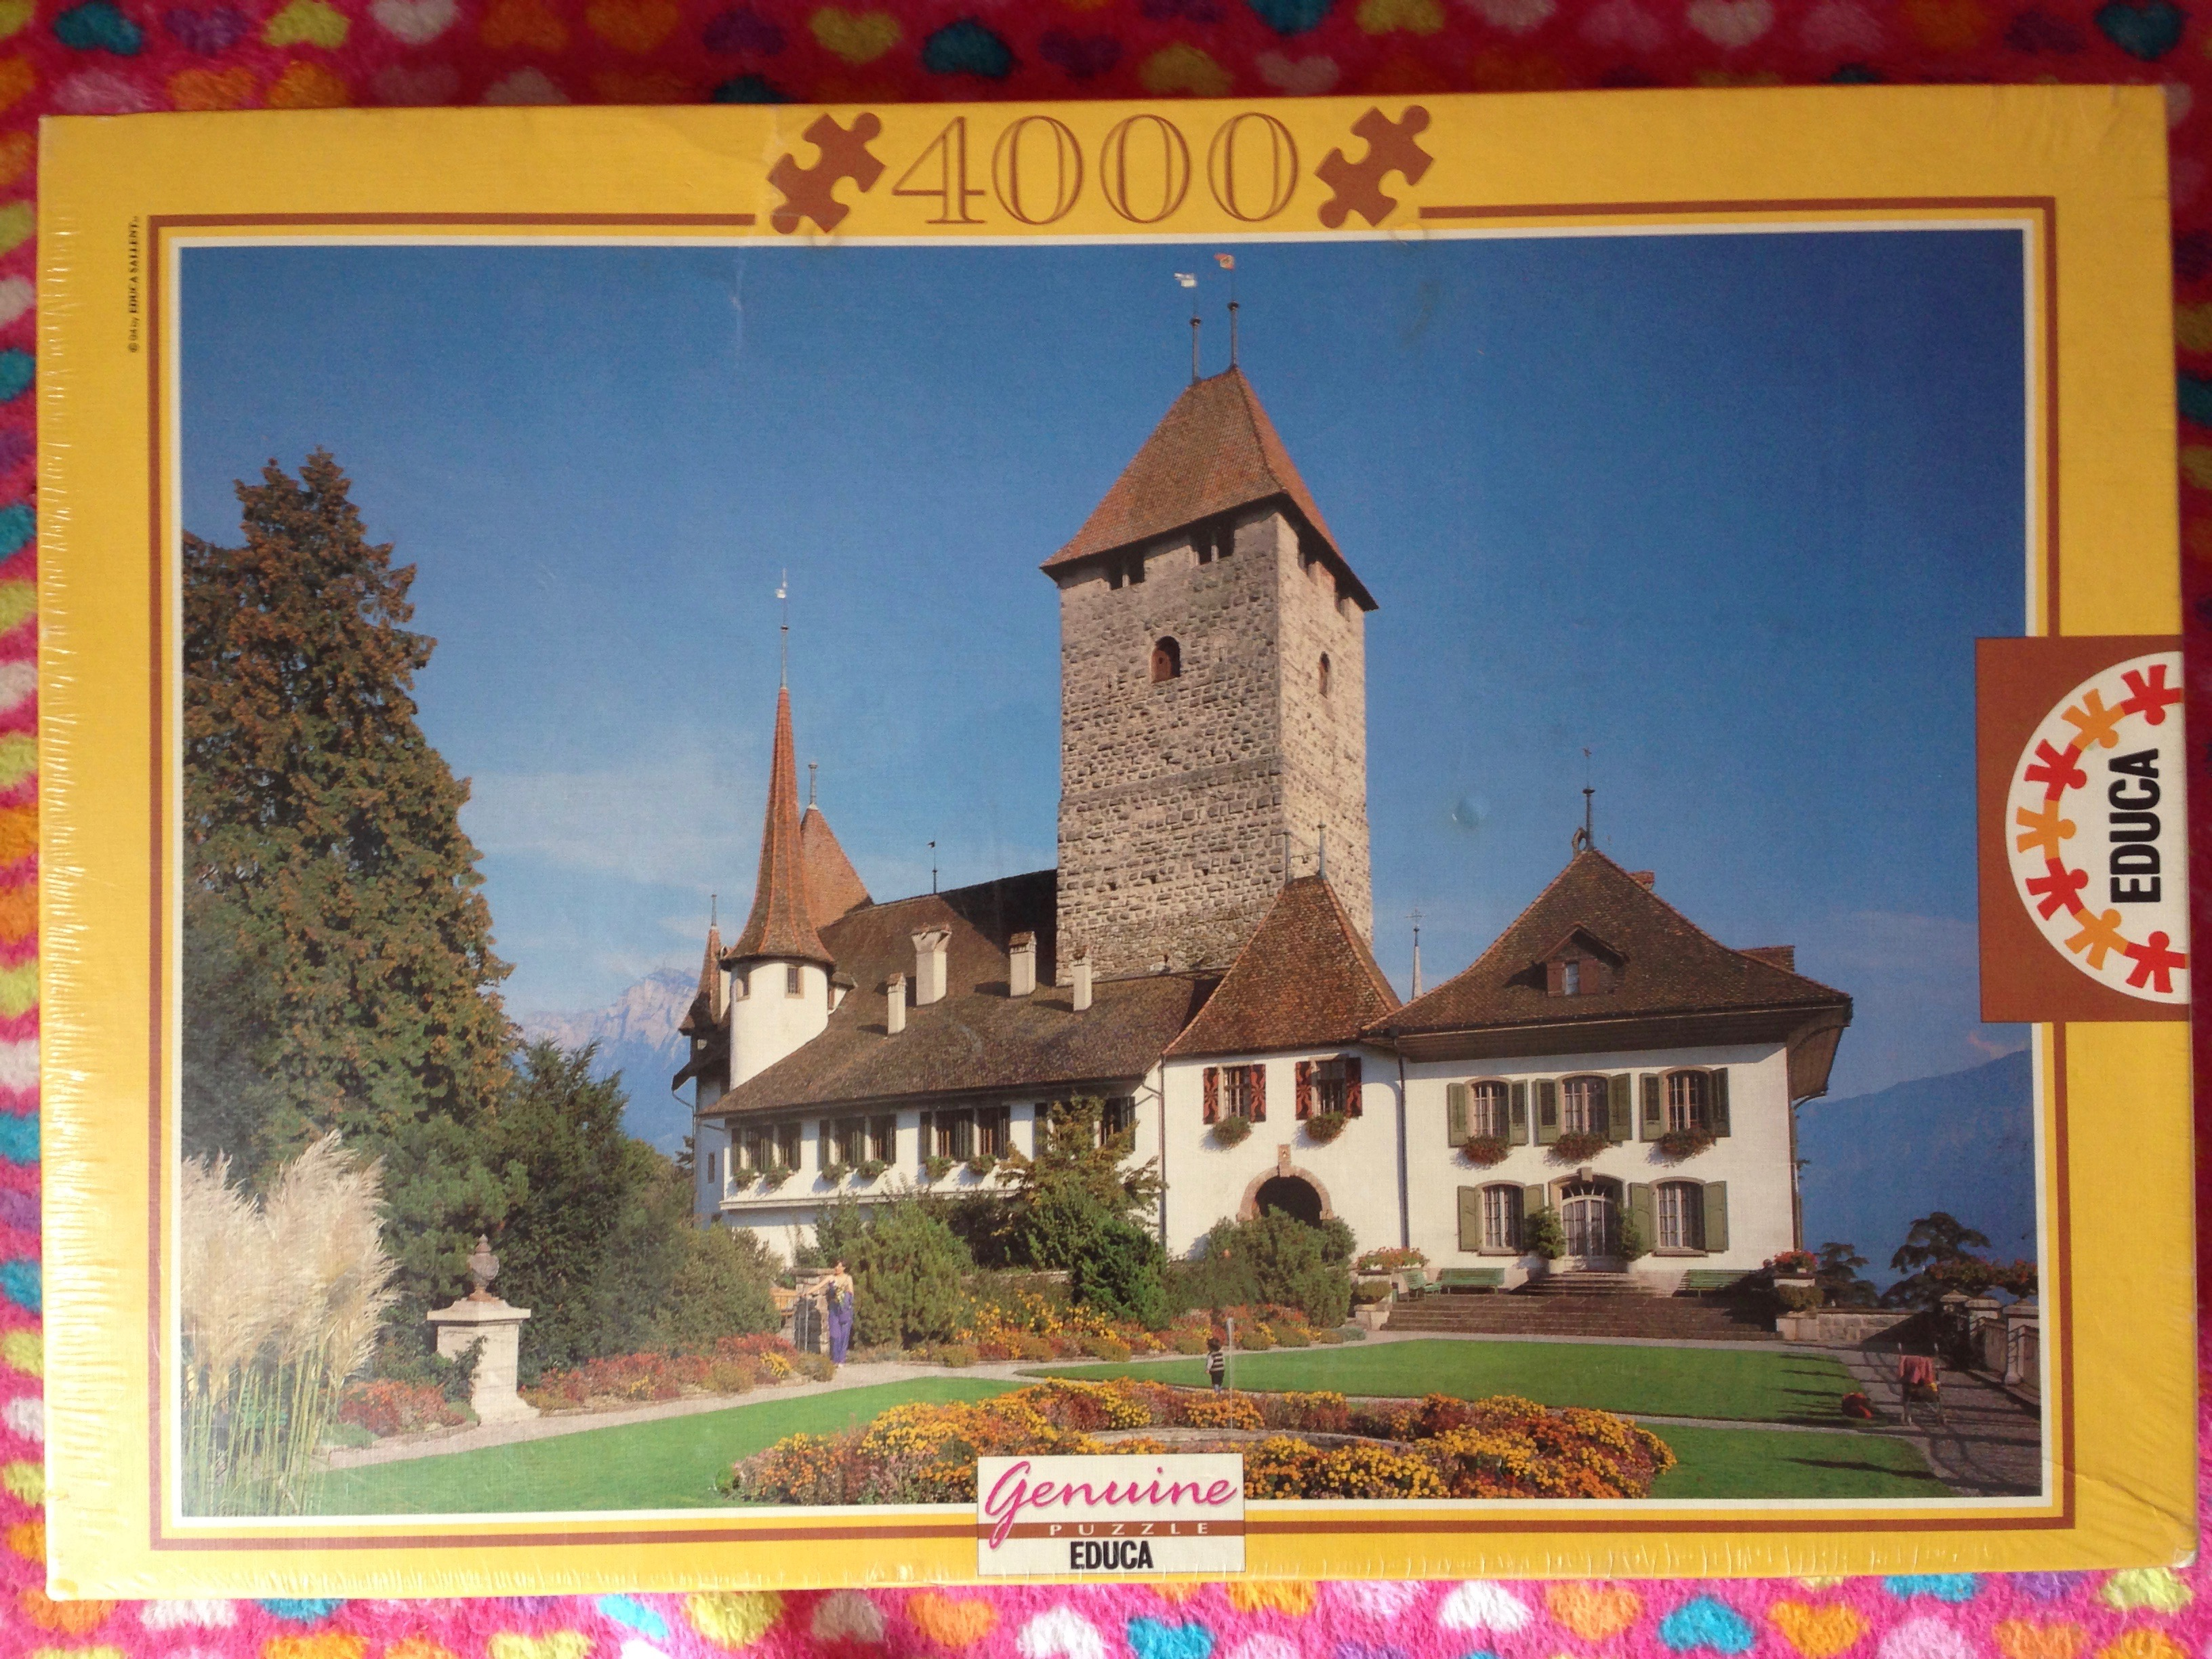 Image of the Puzzle 4000, Educa, Spiez Castle, Switzerland, Factory Sealed